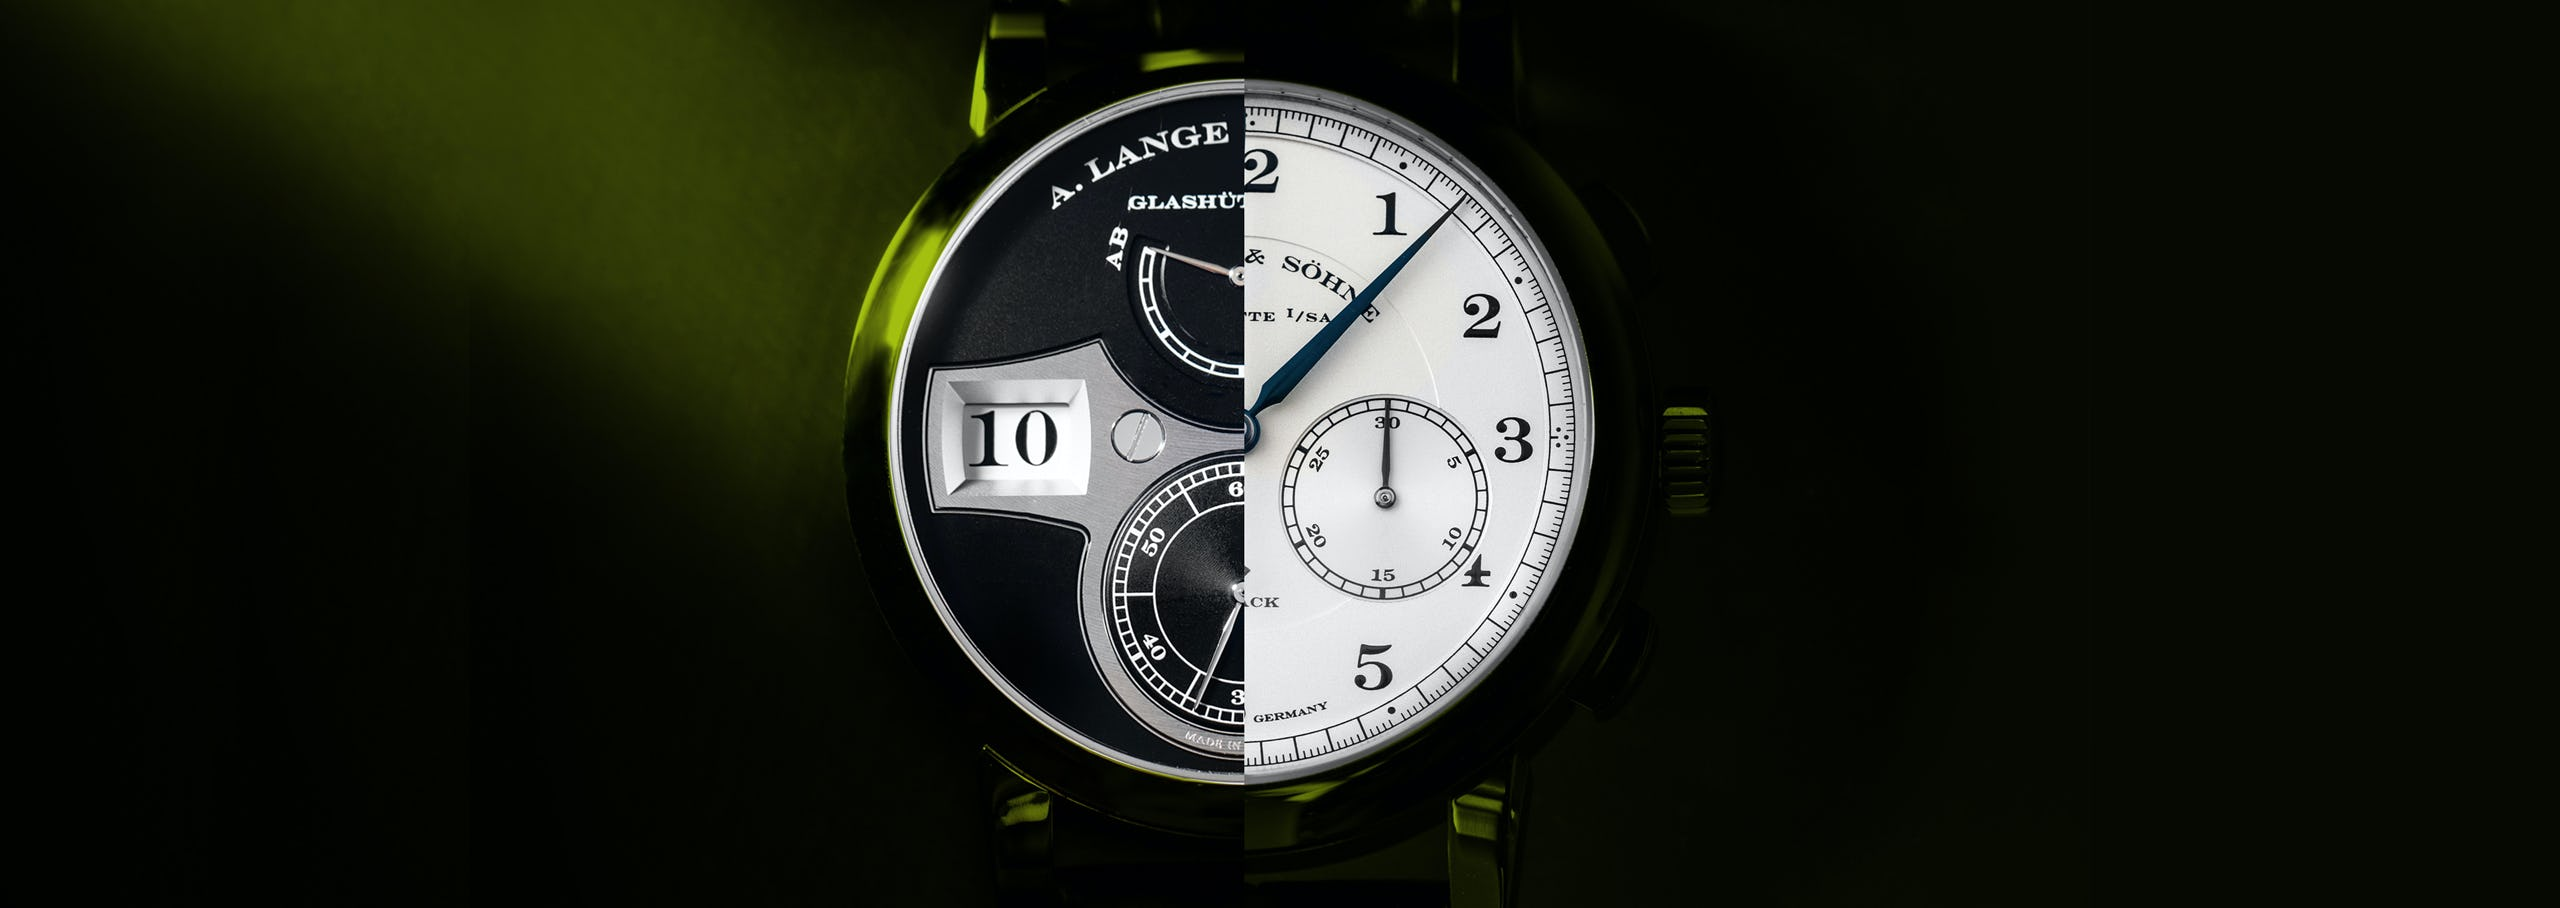 Dr. Jekyll And Mr. Hyde: The Pendulum Swing of A. Lange & Söhne Watch Design